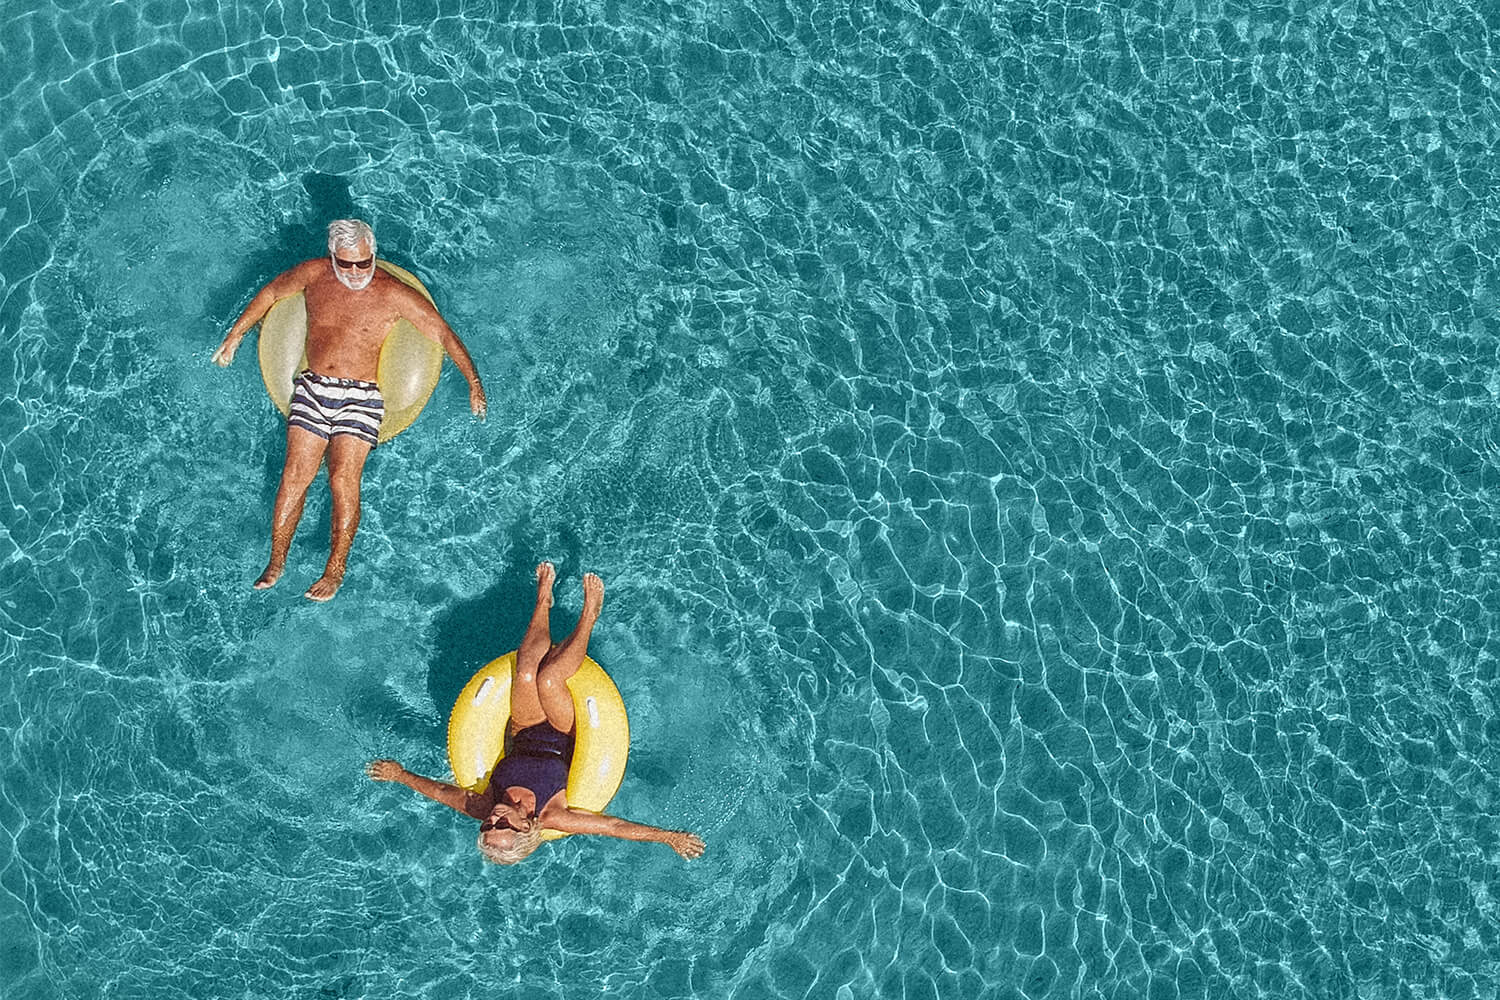 Two people float on rafts in a pool